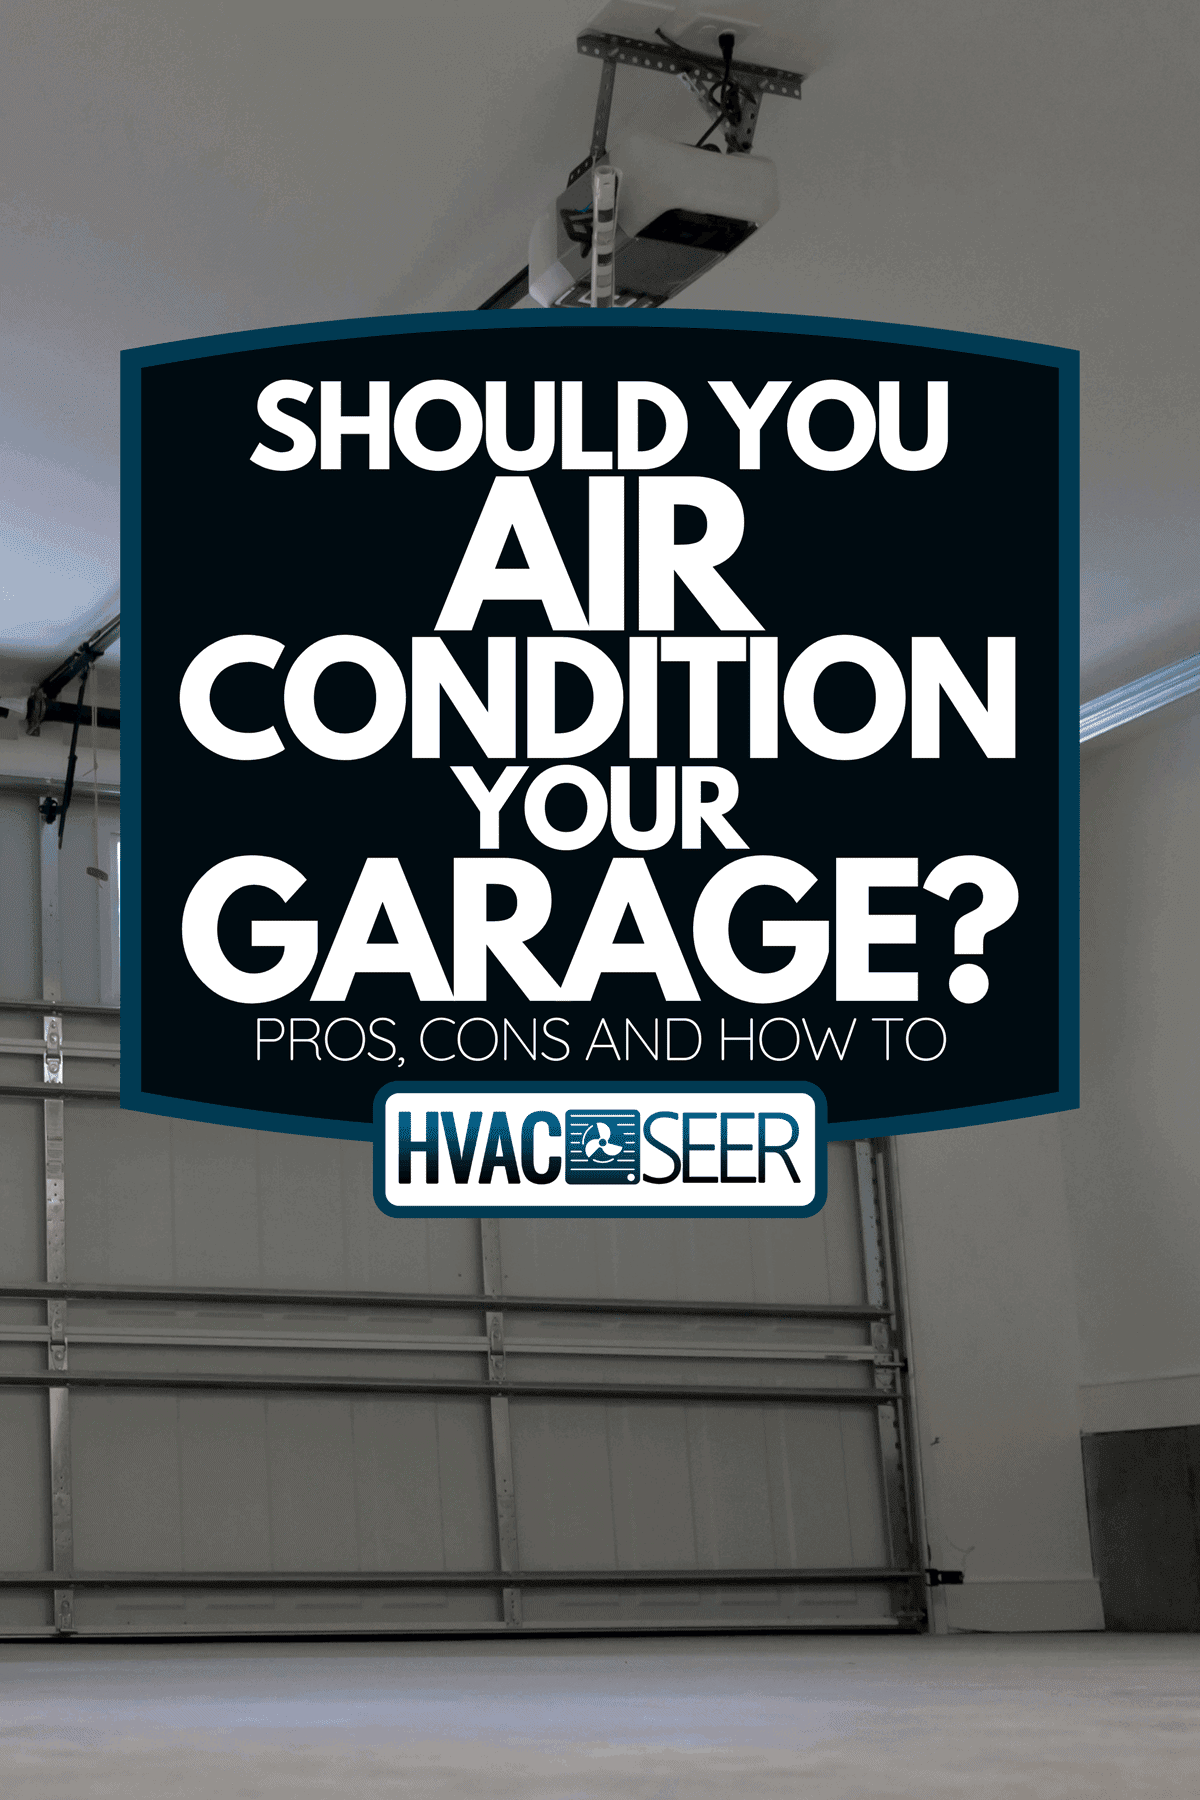 Inside a large empty garage, Should You Air Condition Your Garage? [Pros, Cons And How To]